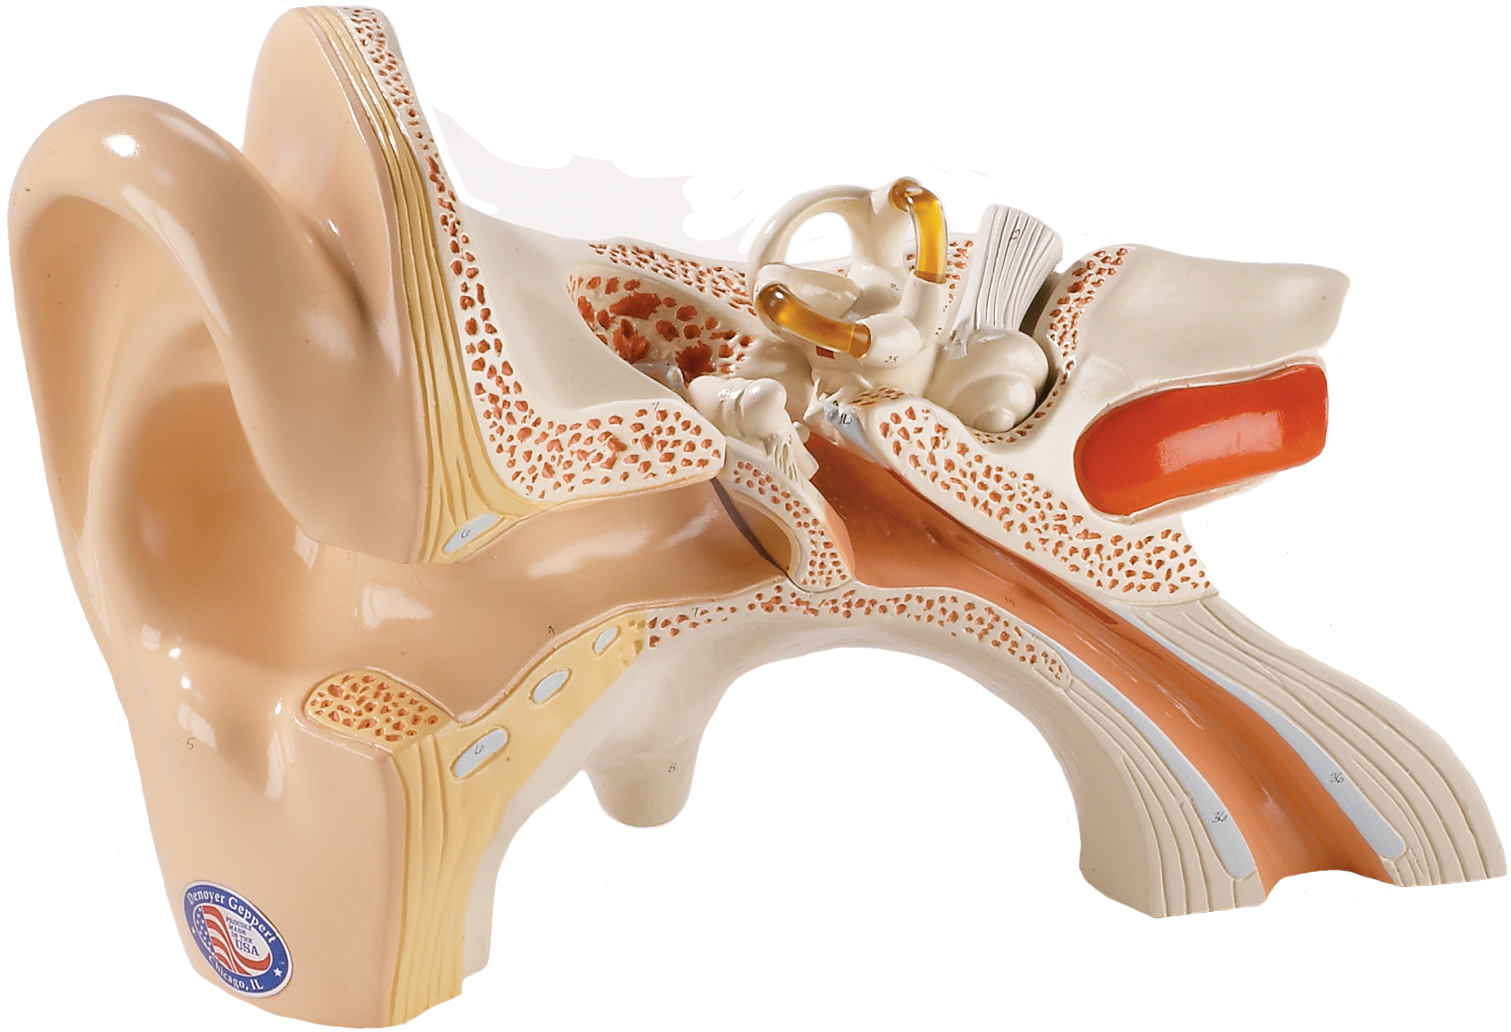 Giant Human Ear Models - Highly detailed